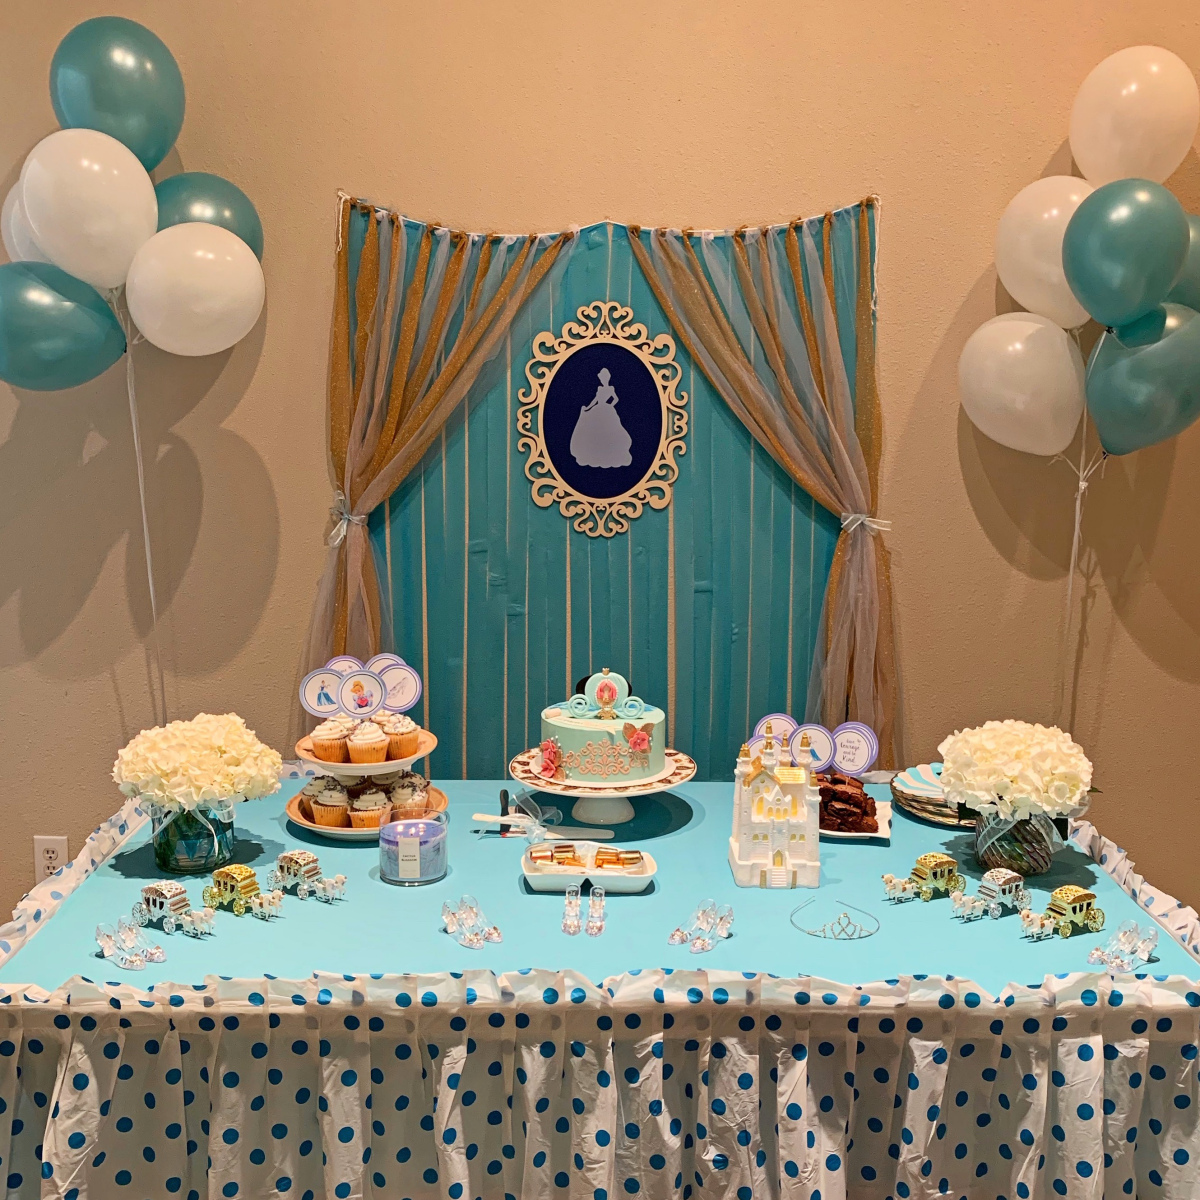 @mads.for.food's cover photo for 'Planning a Cinderella Themed Birthday'